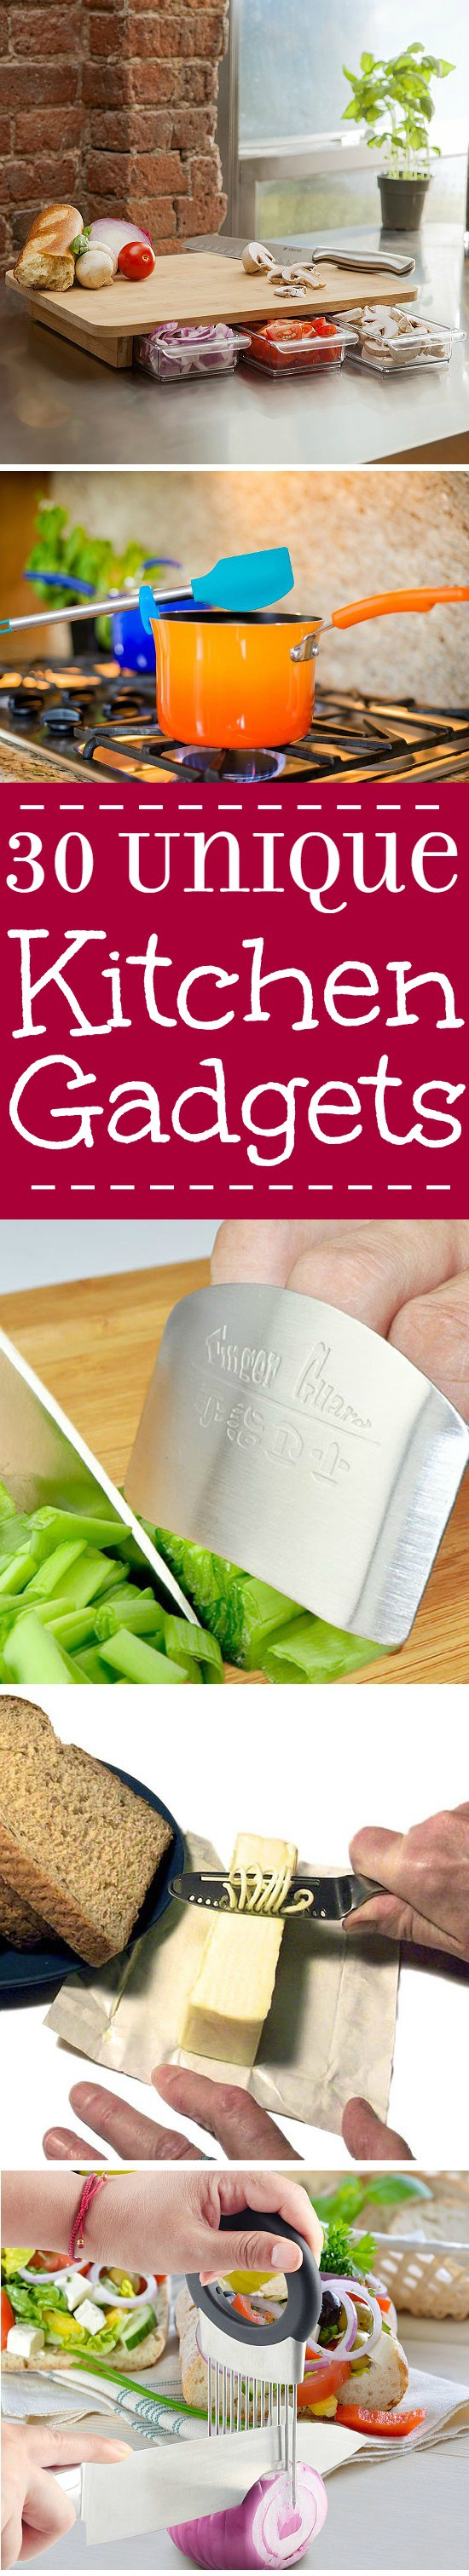 Amazing And Unique Kitchen Gadgets The Gracious Wife - 3-kitchen-gadgets-that-makes-your-life-easier